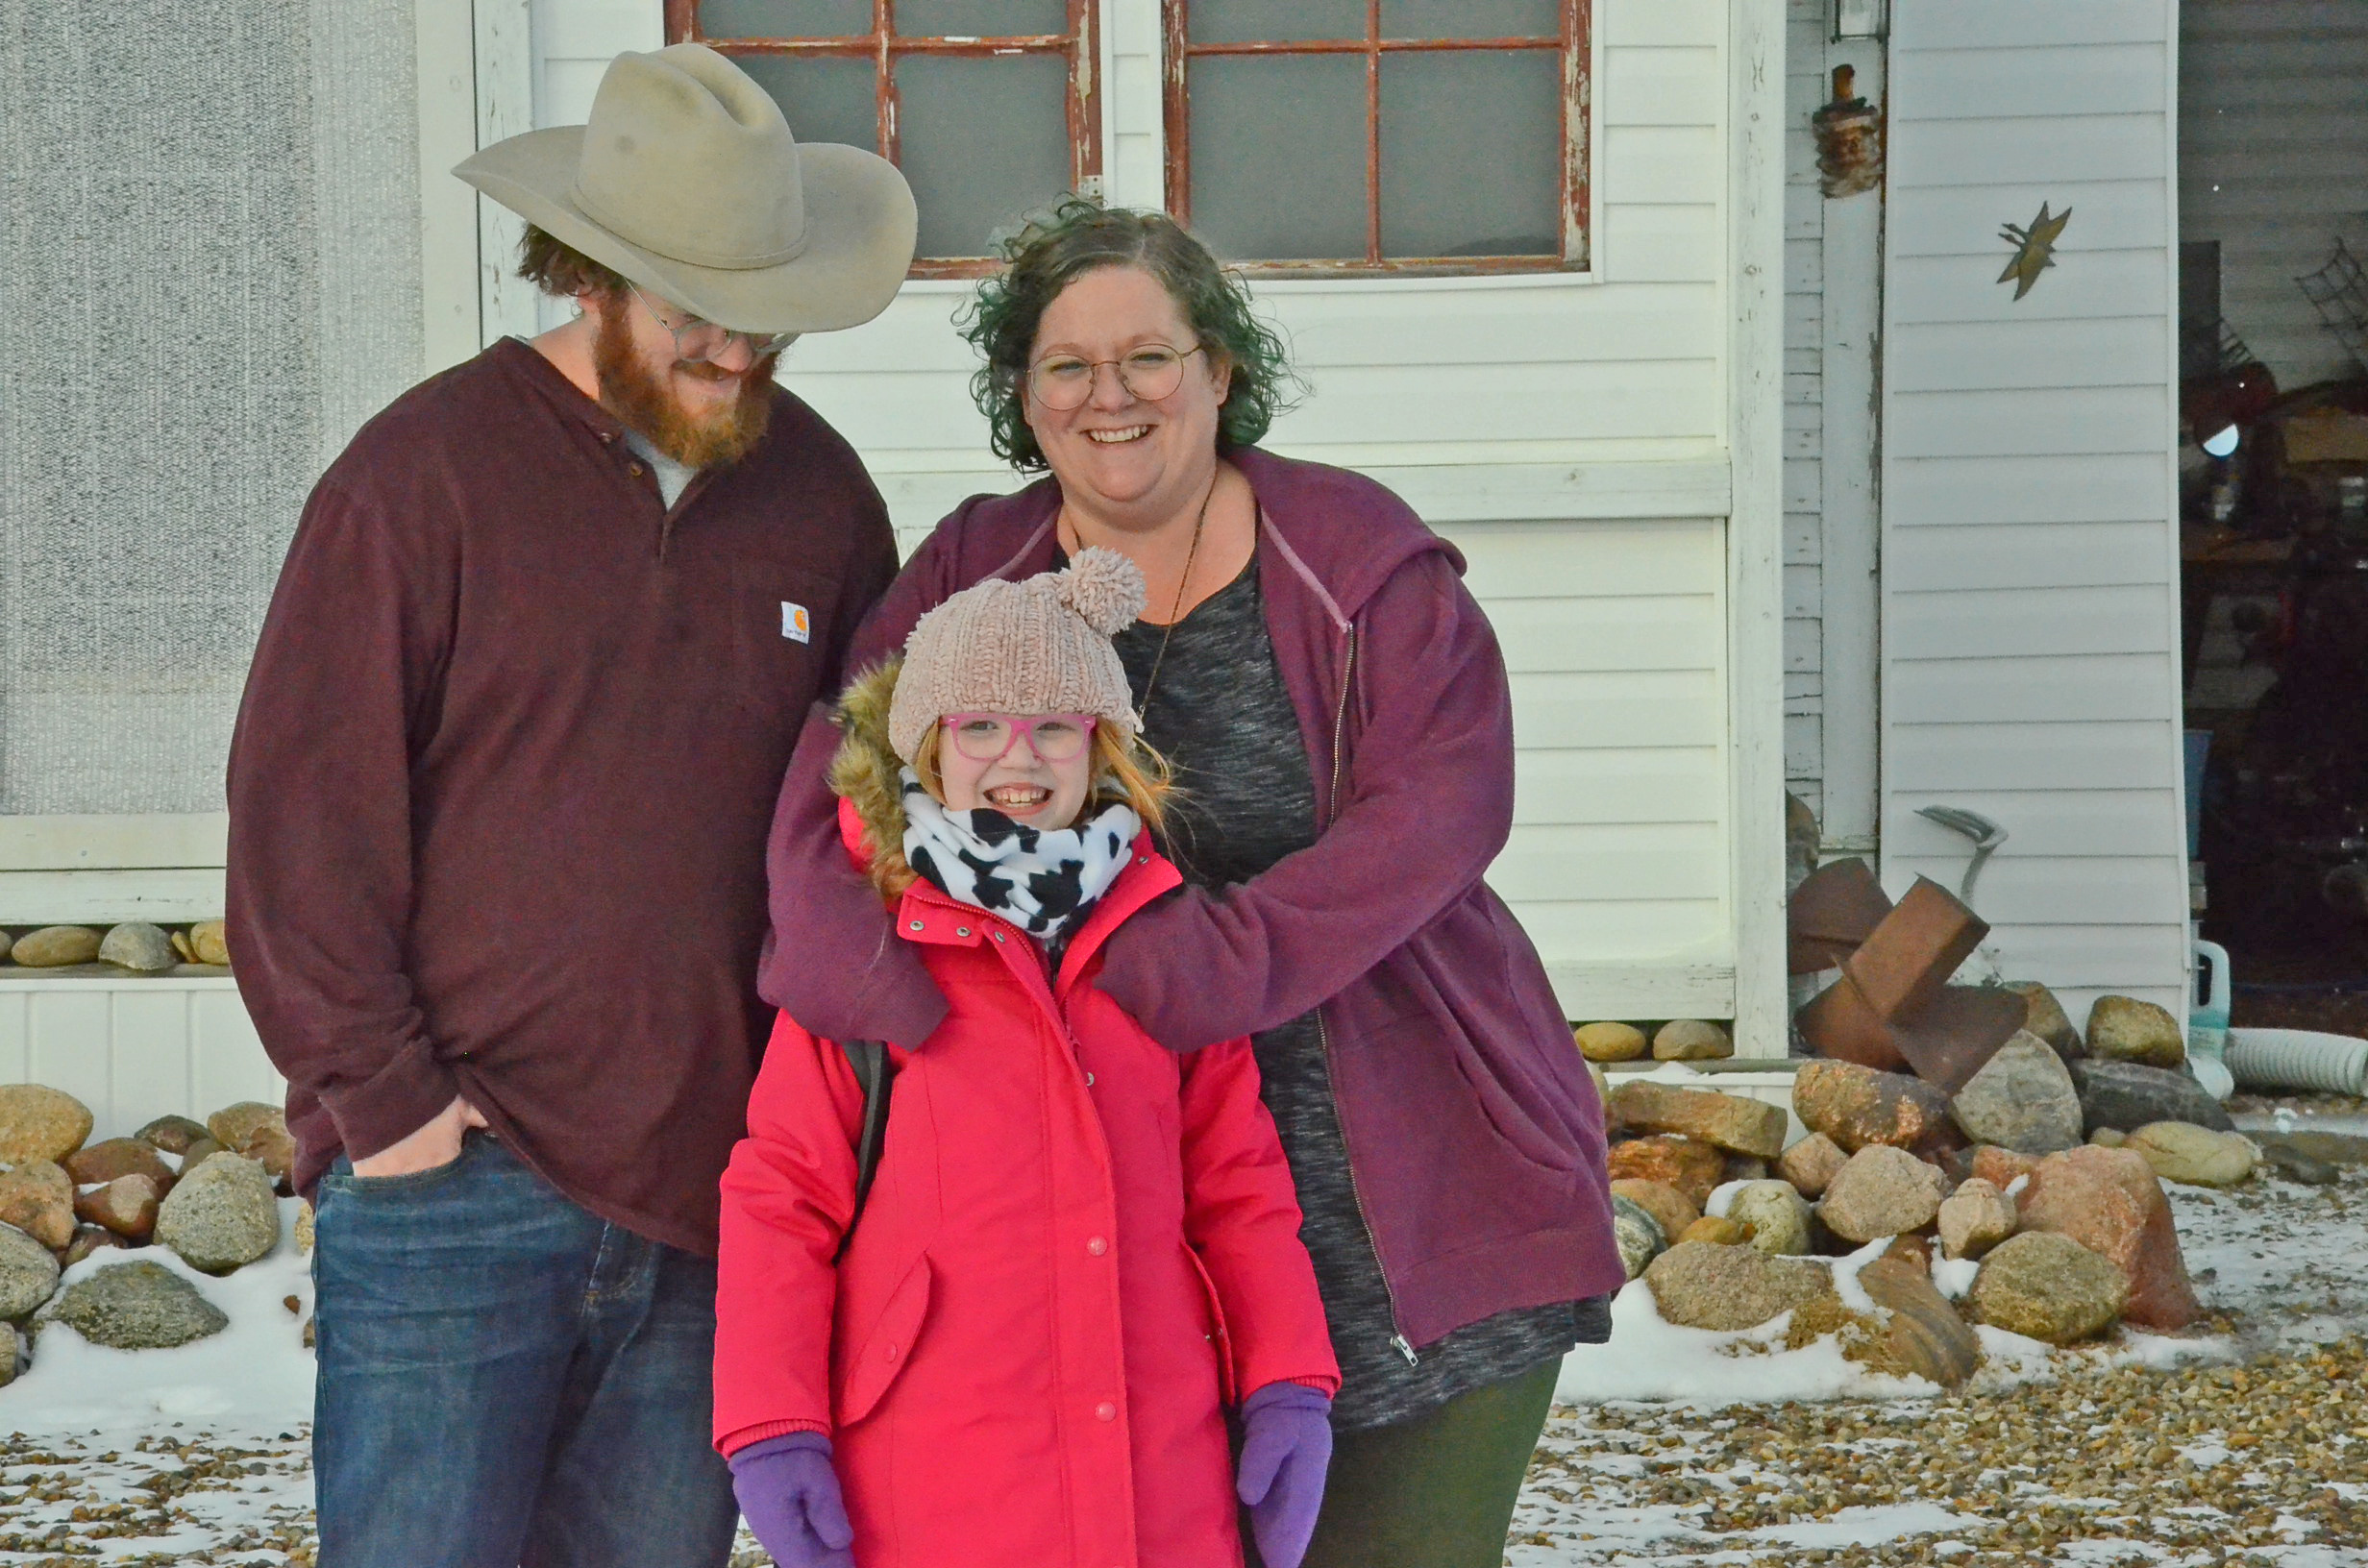 Brad and Colleen Proudlove, and their daughter, Neko, moved to a church near the U.S. border last year. (Bridget Yard/CBC)